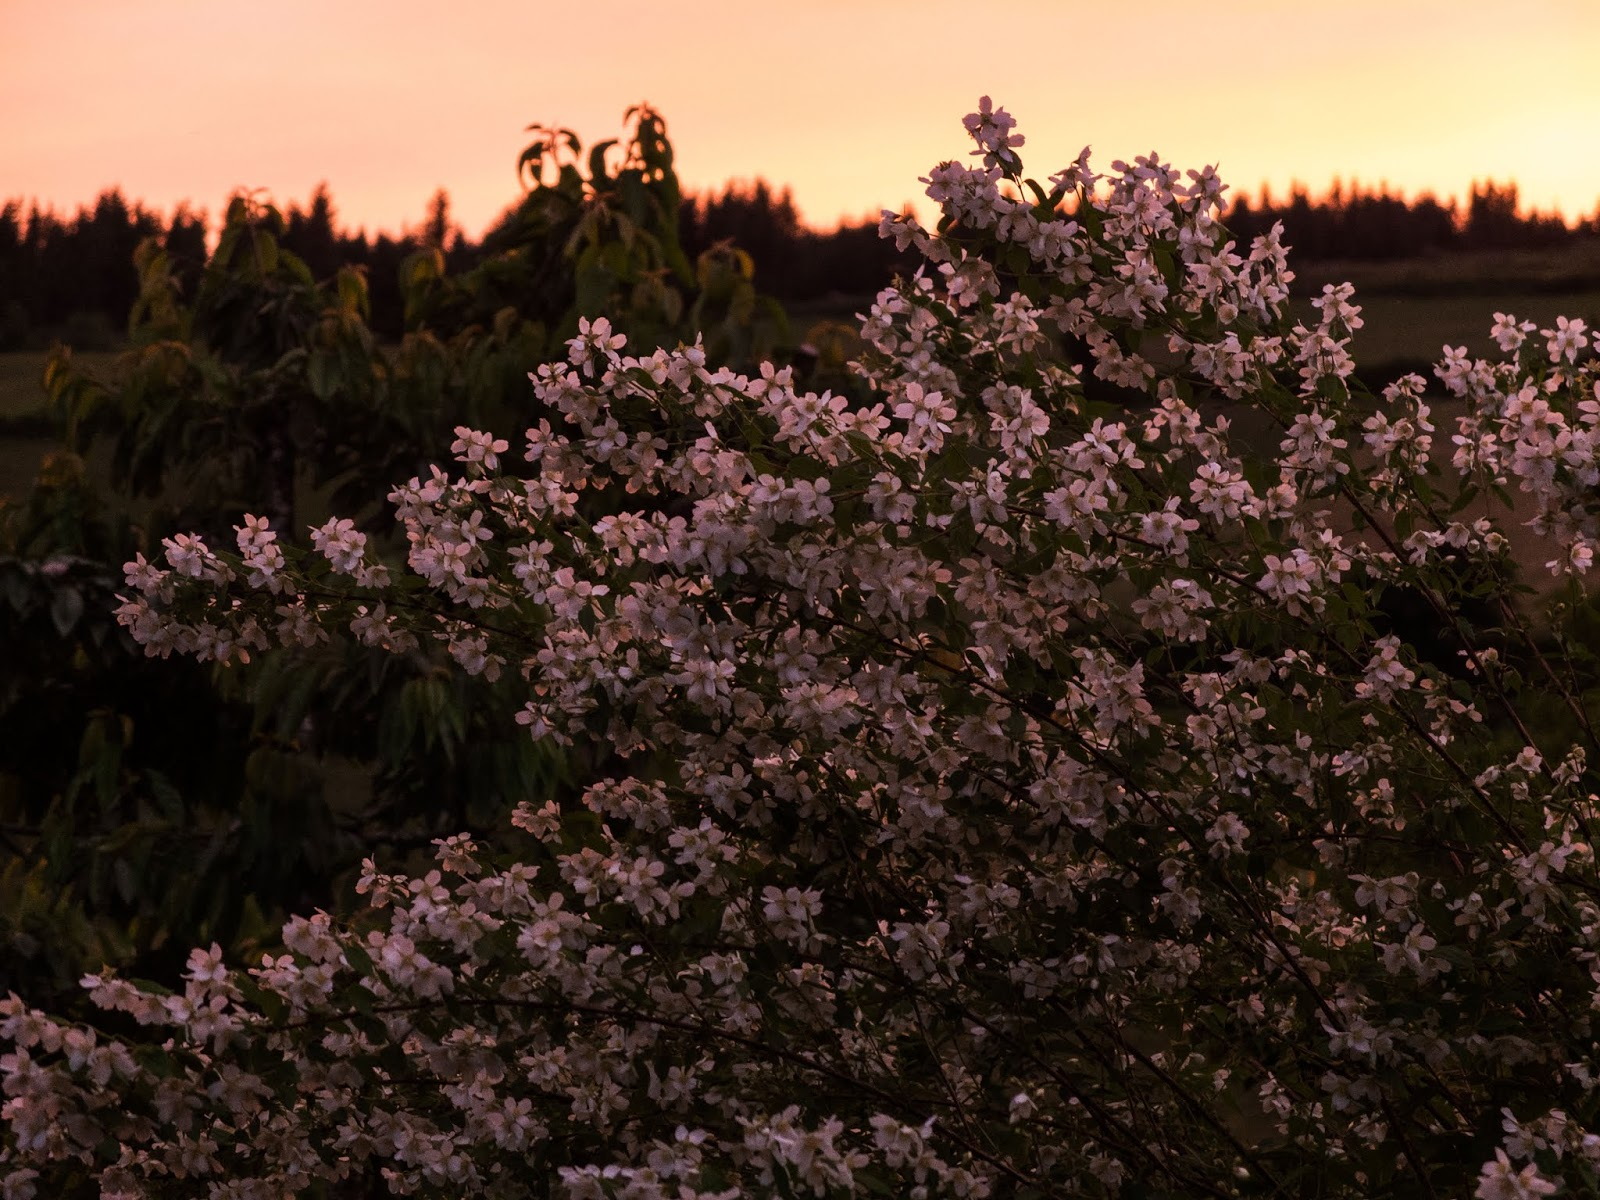 Jasmine bush flowers in pink tones during a sunset.